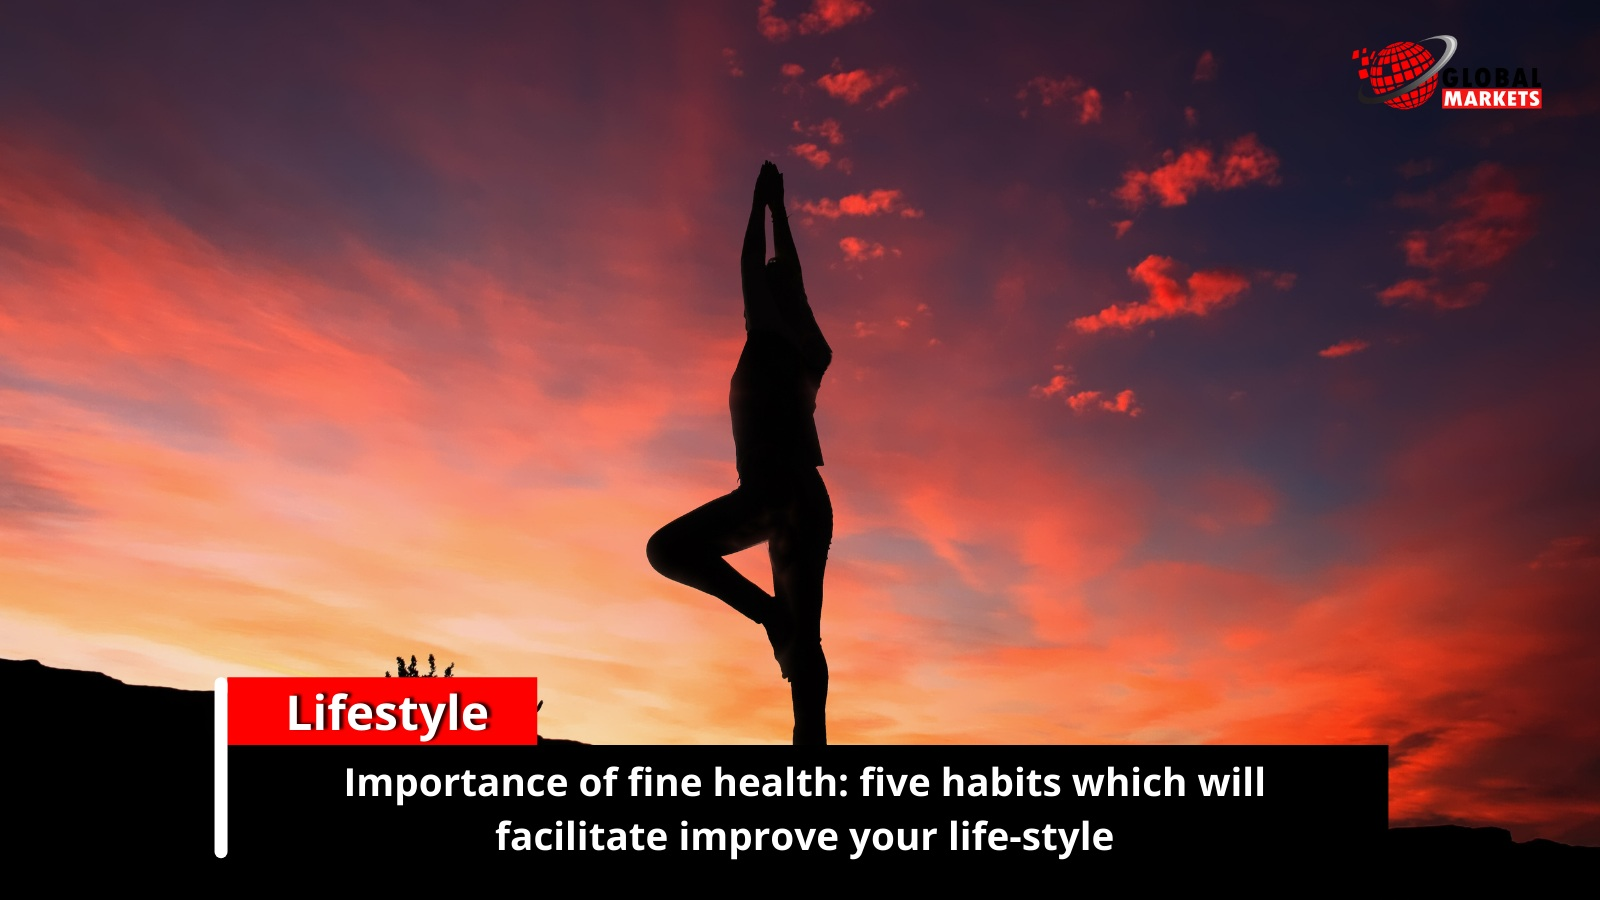 Importance of fine health: five habits which will facilitate improve your life-style